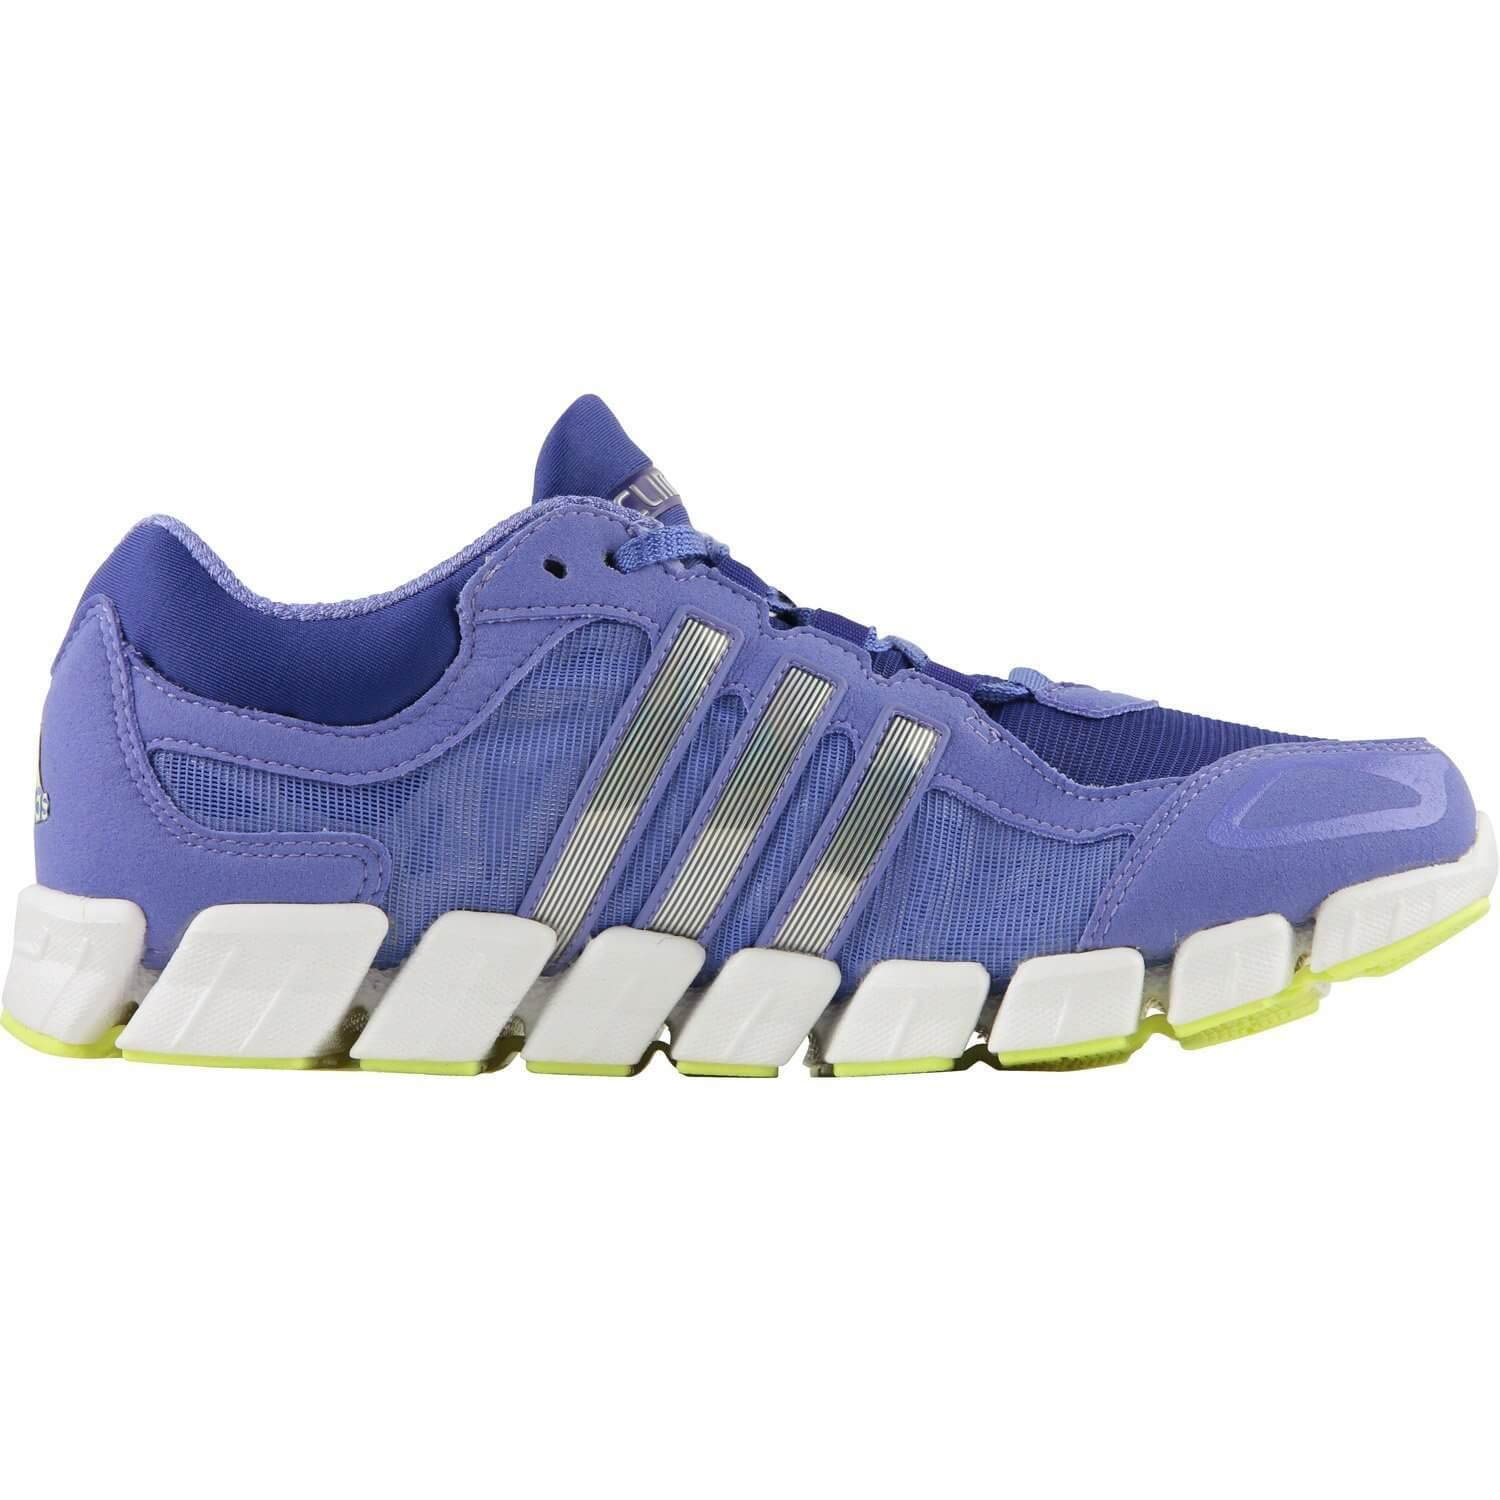 hot sale online bb516 67866 ... A cushioned and flexible midsole promote a natural stride while wearing  the Adidas Climacool Freshride ...